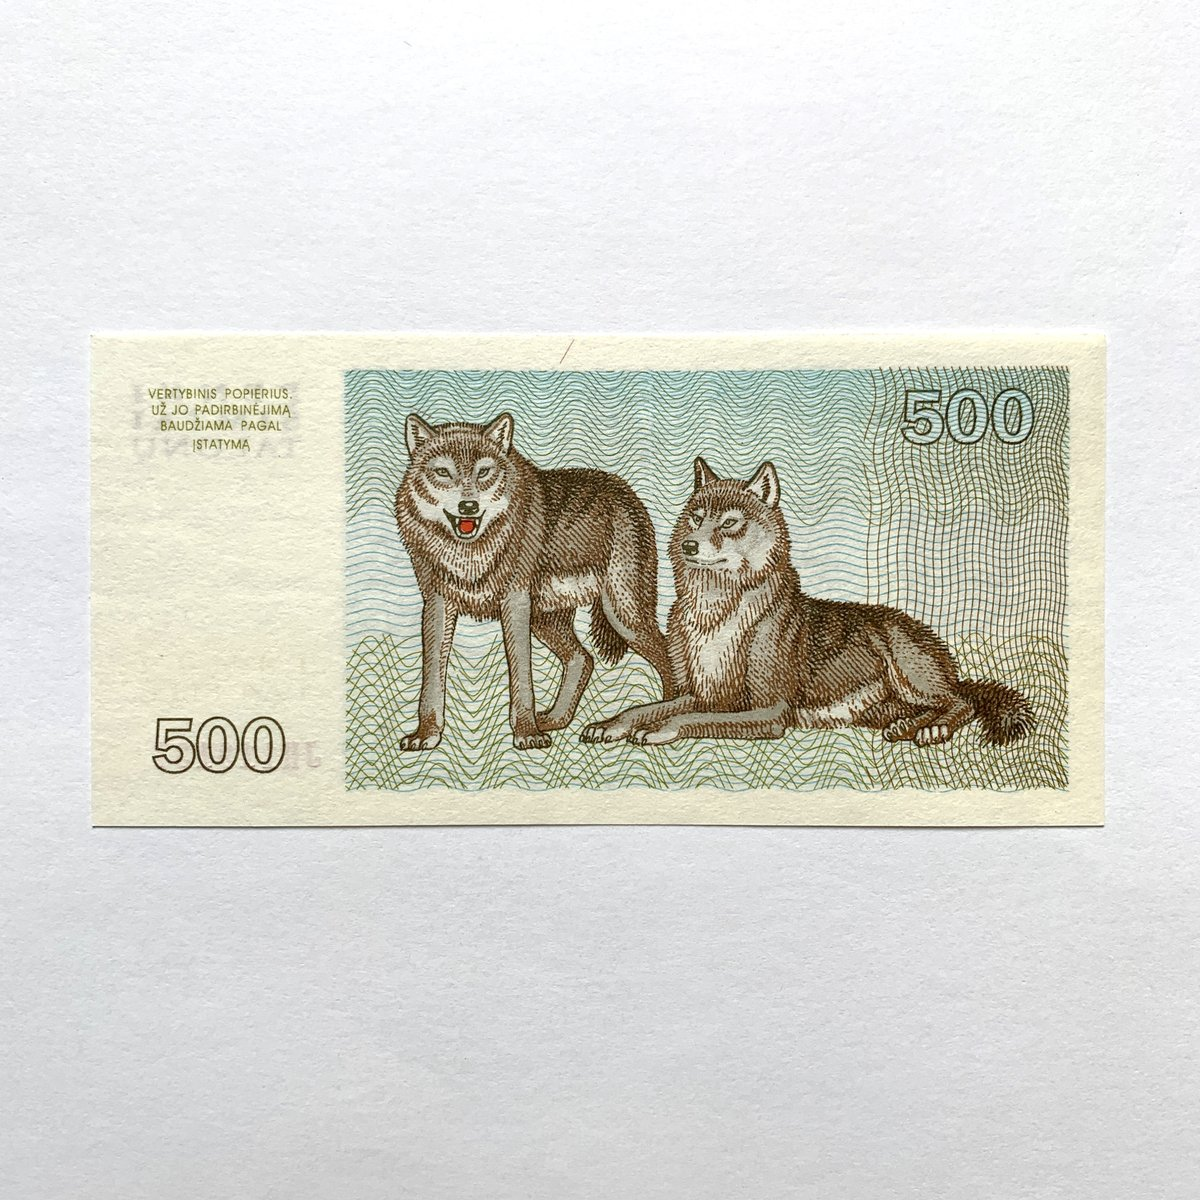 my #etsy shop: 1993 500 Lithuanian Talonu Banknote. Lithuania Currency. Two Wolves. Small Beautiful Note, Bill. Former USSR Memorabilia. World Banknotes  #lithuania #lithuanian #ussr #cccp #soviet #banknote #currency #talonas #bills